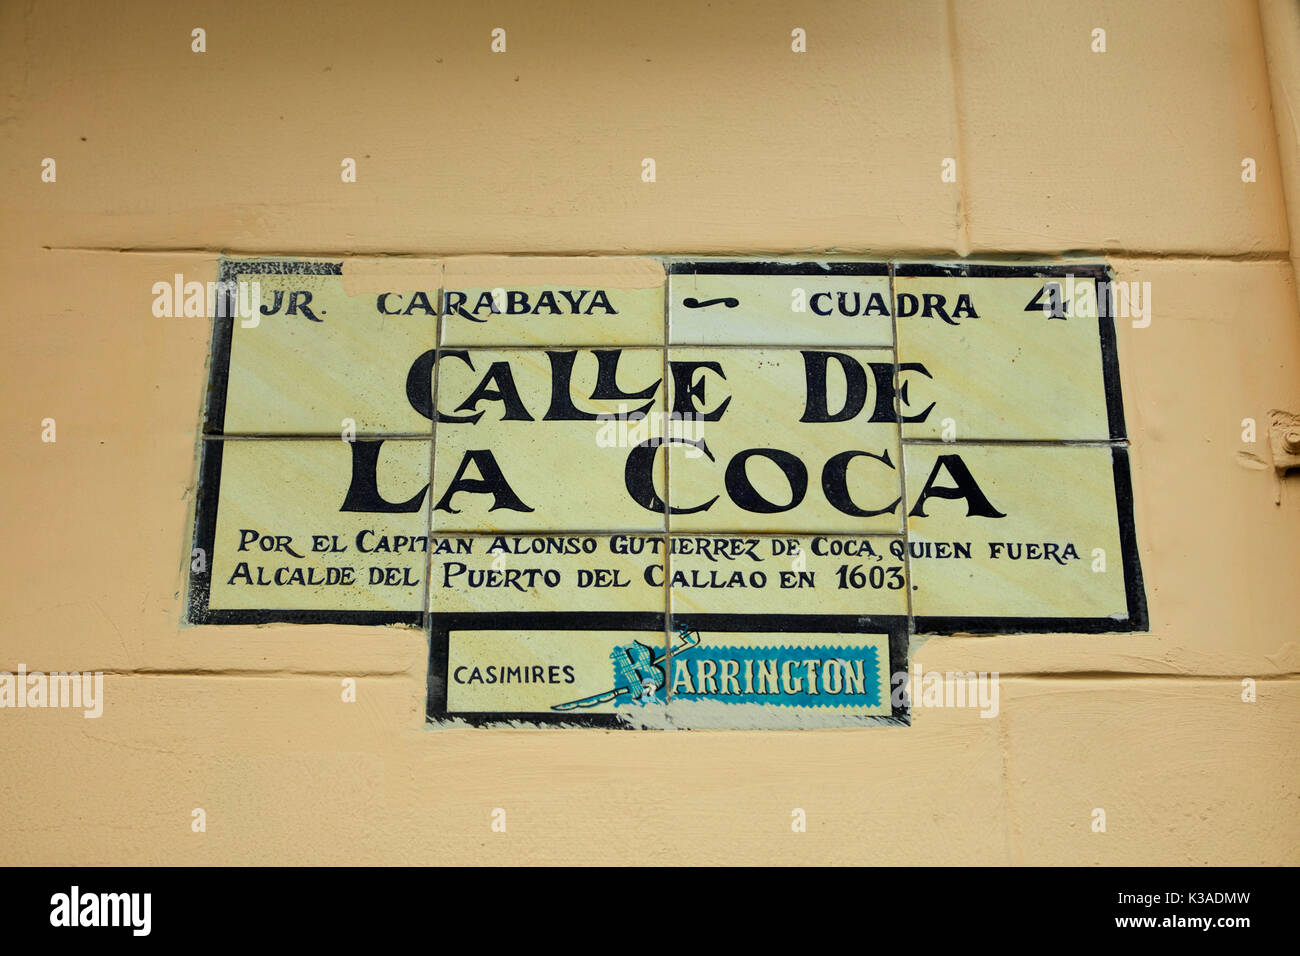 Old street sign for Calle de la Coca (Street of the Coca), Historic centre of Lima (World Heritage Site), Peru, South America - Stock Image